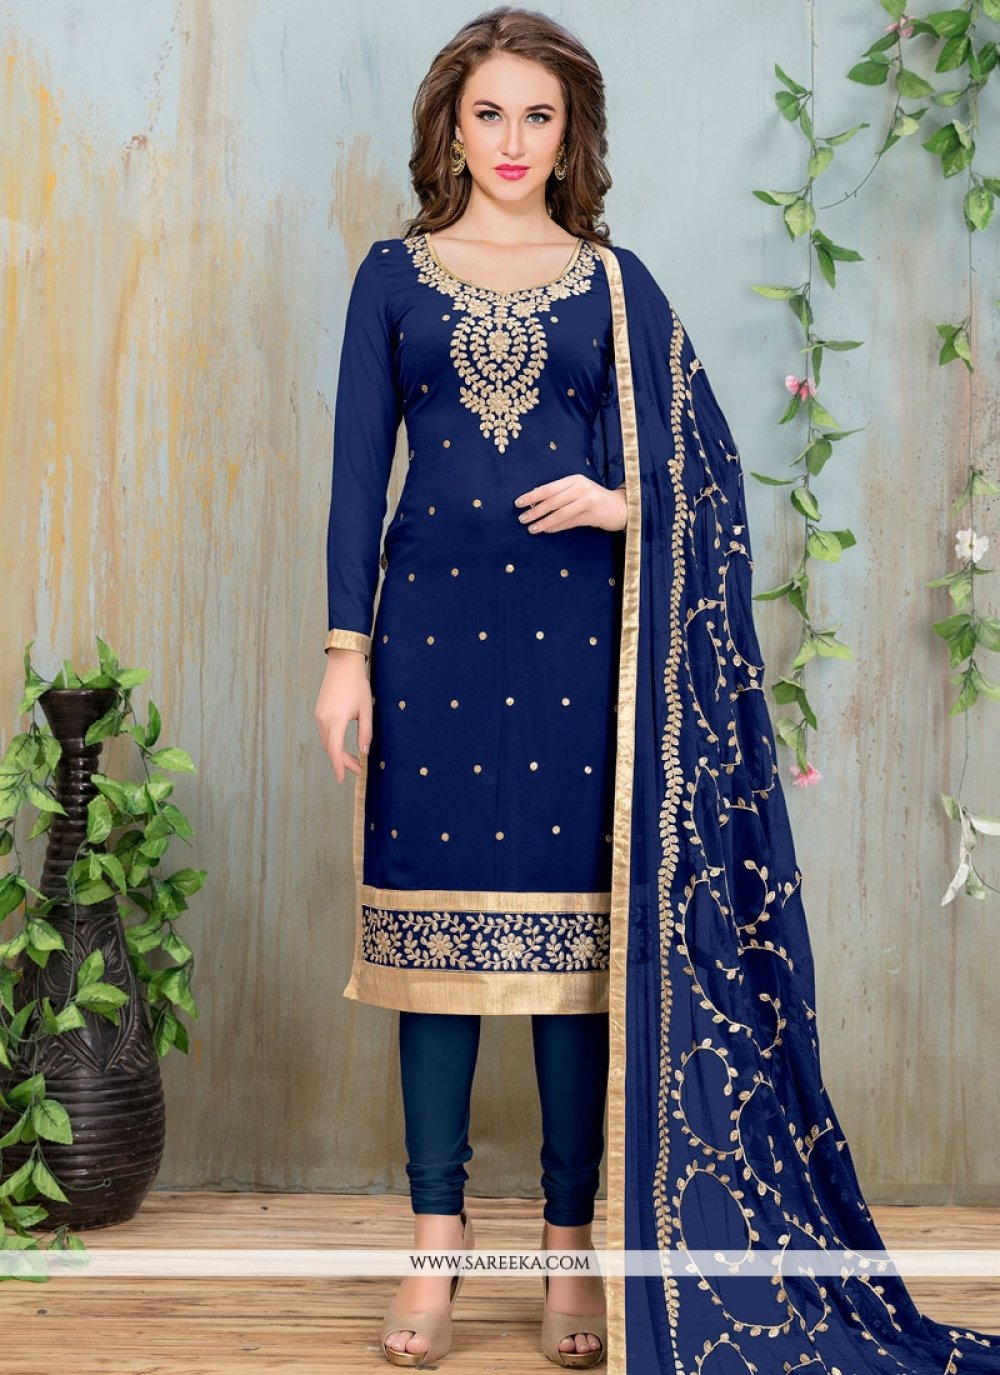 Navy Blue Embroidered Work Faux Georgette Churidar Suit